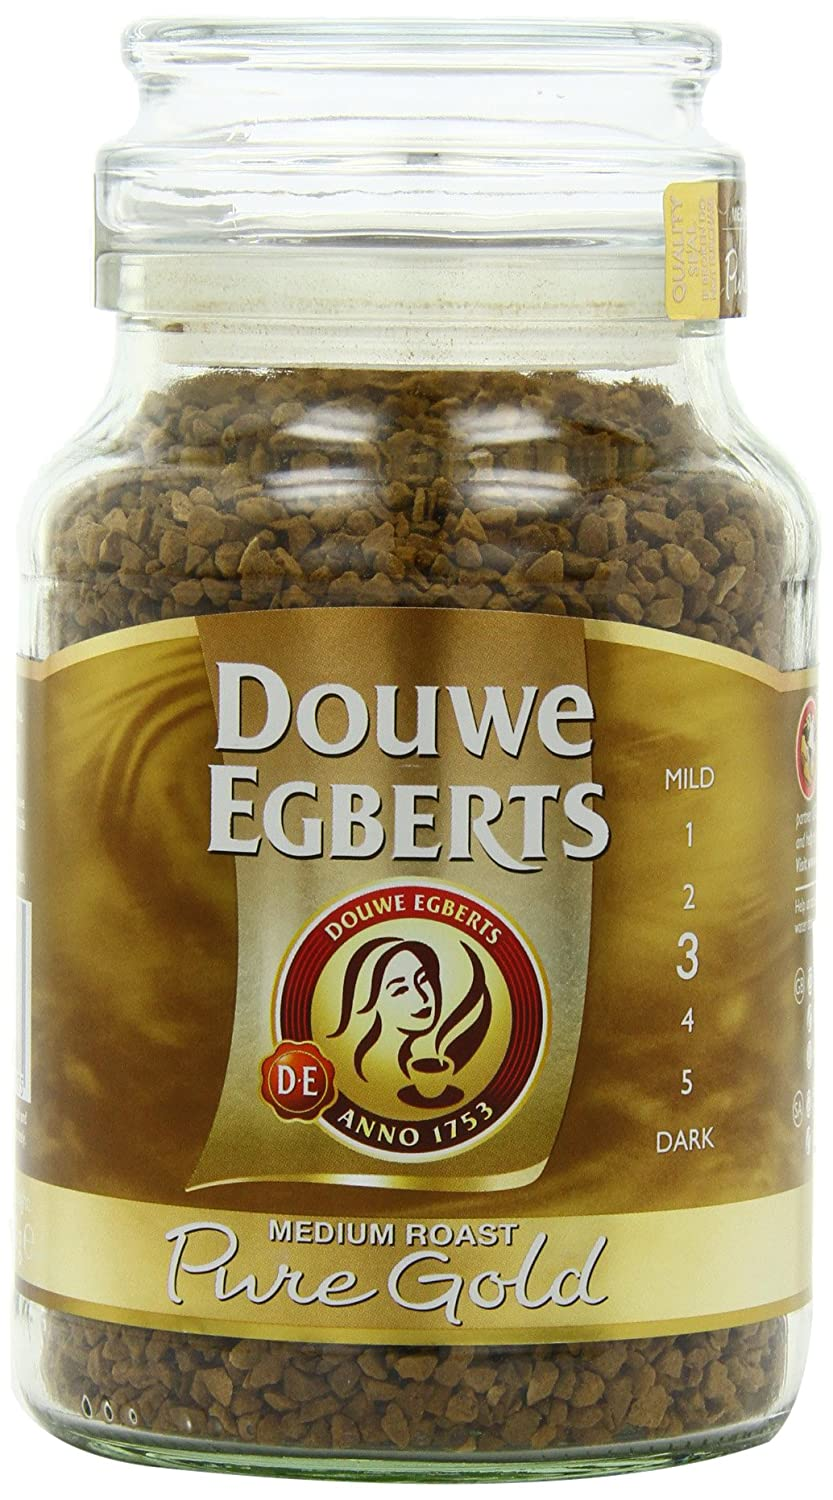 Douwe Egberts Pure Gold Instant Coffee, Medium Roast, 7.05-Ounce, 200g (Packaging May Vary) TRTAZ11A